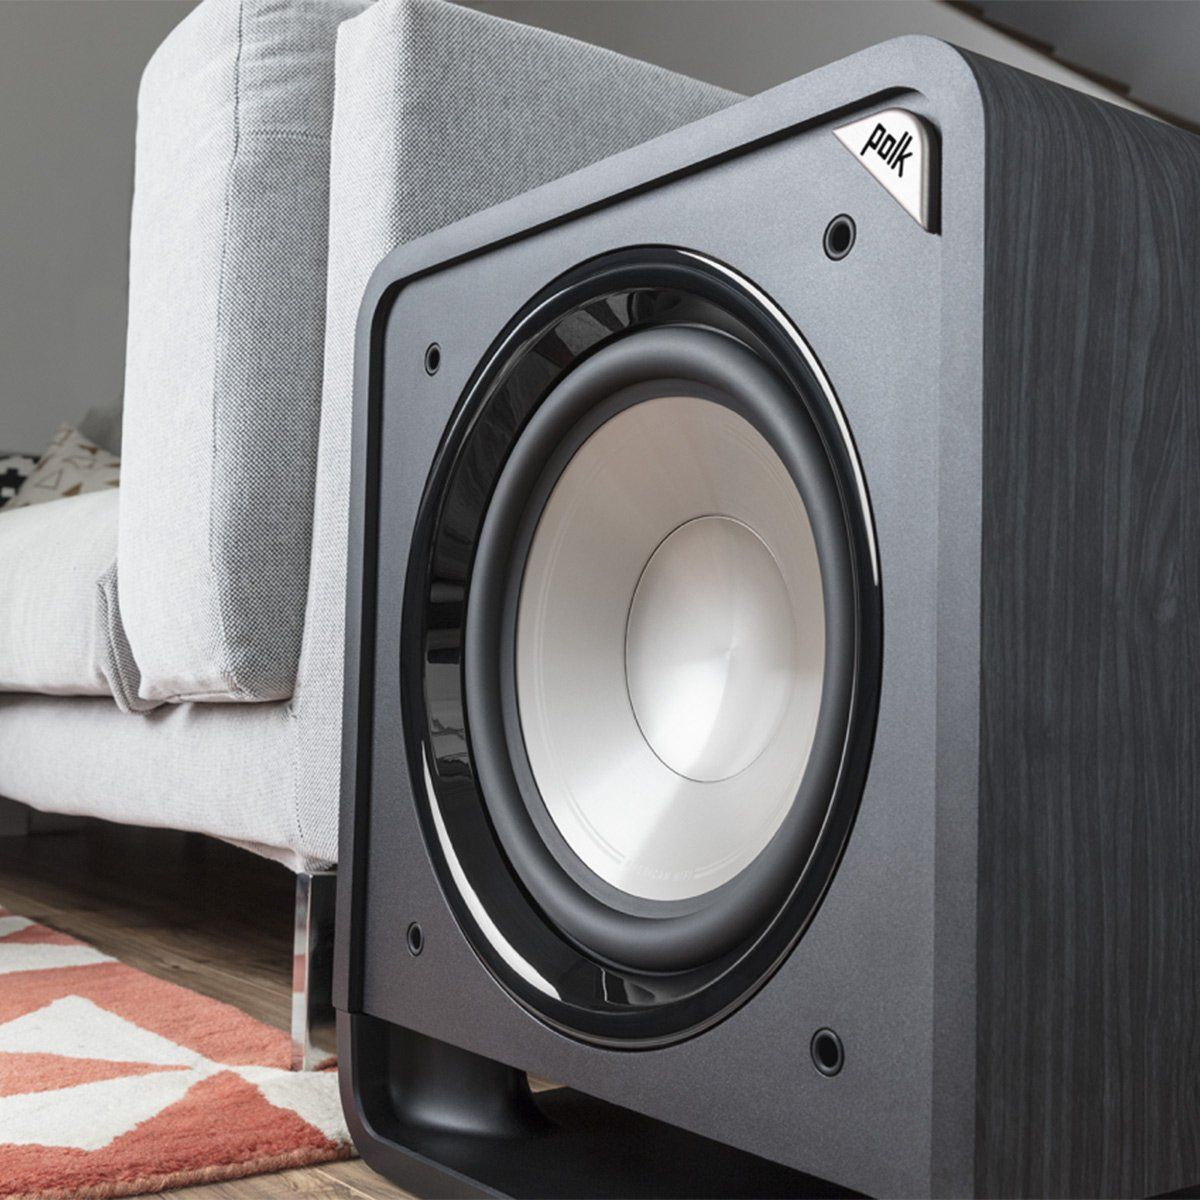 Polk Audio 12 Inches 400 Watts Home Theater Subwoofer Black Walnut Hts Sub 12 Blk Wal Click Image For More Det Polk Audio Home Theater Subwoofer Audio Ideas